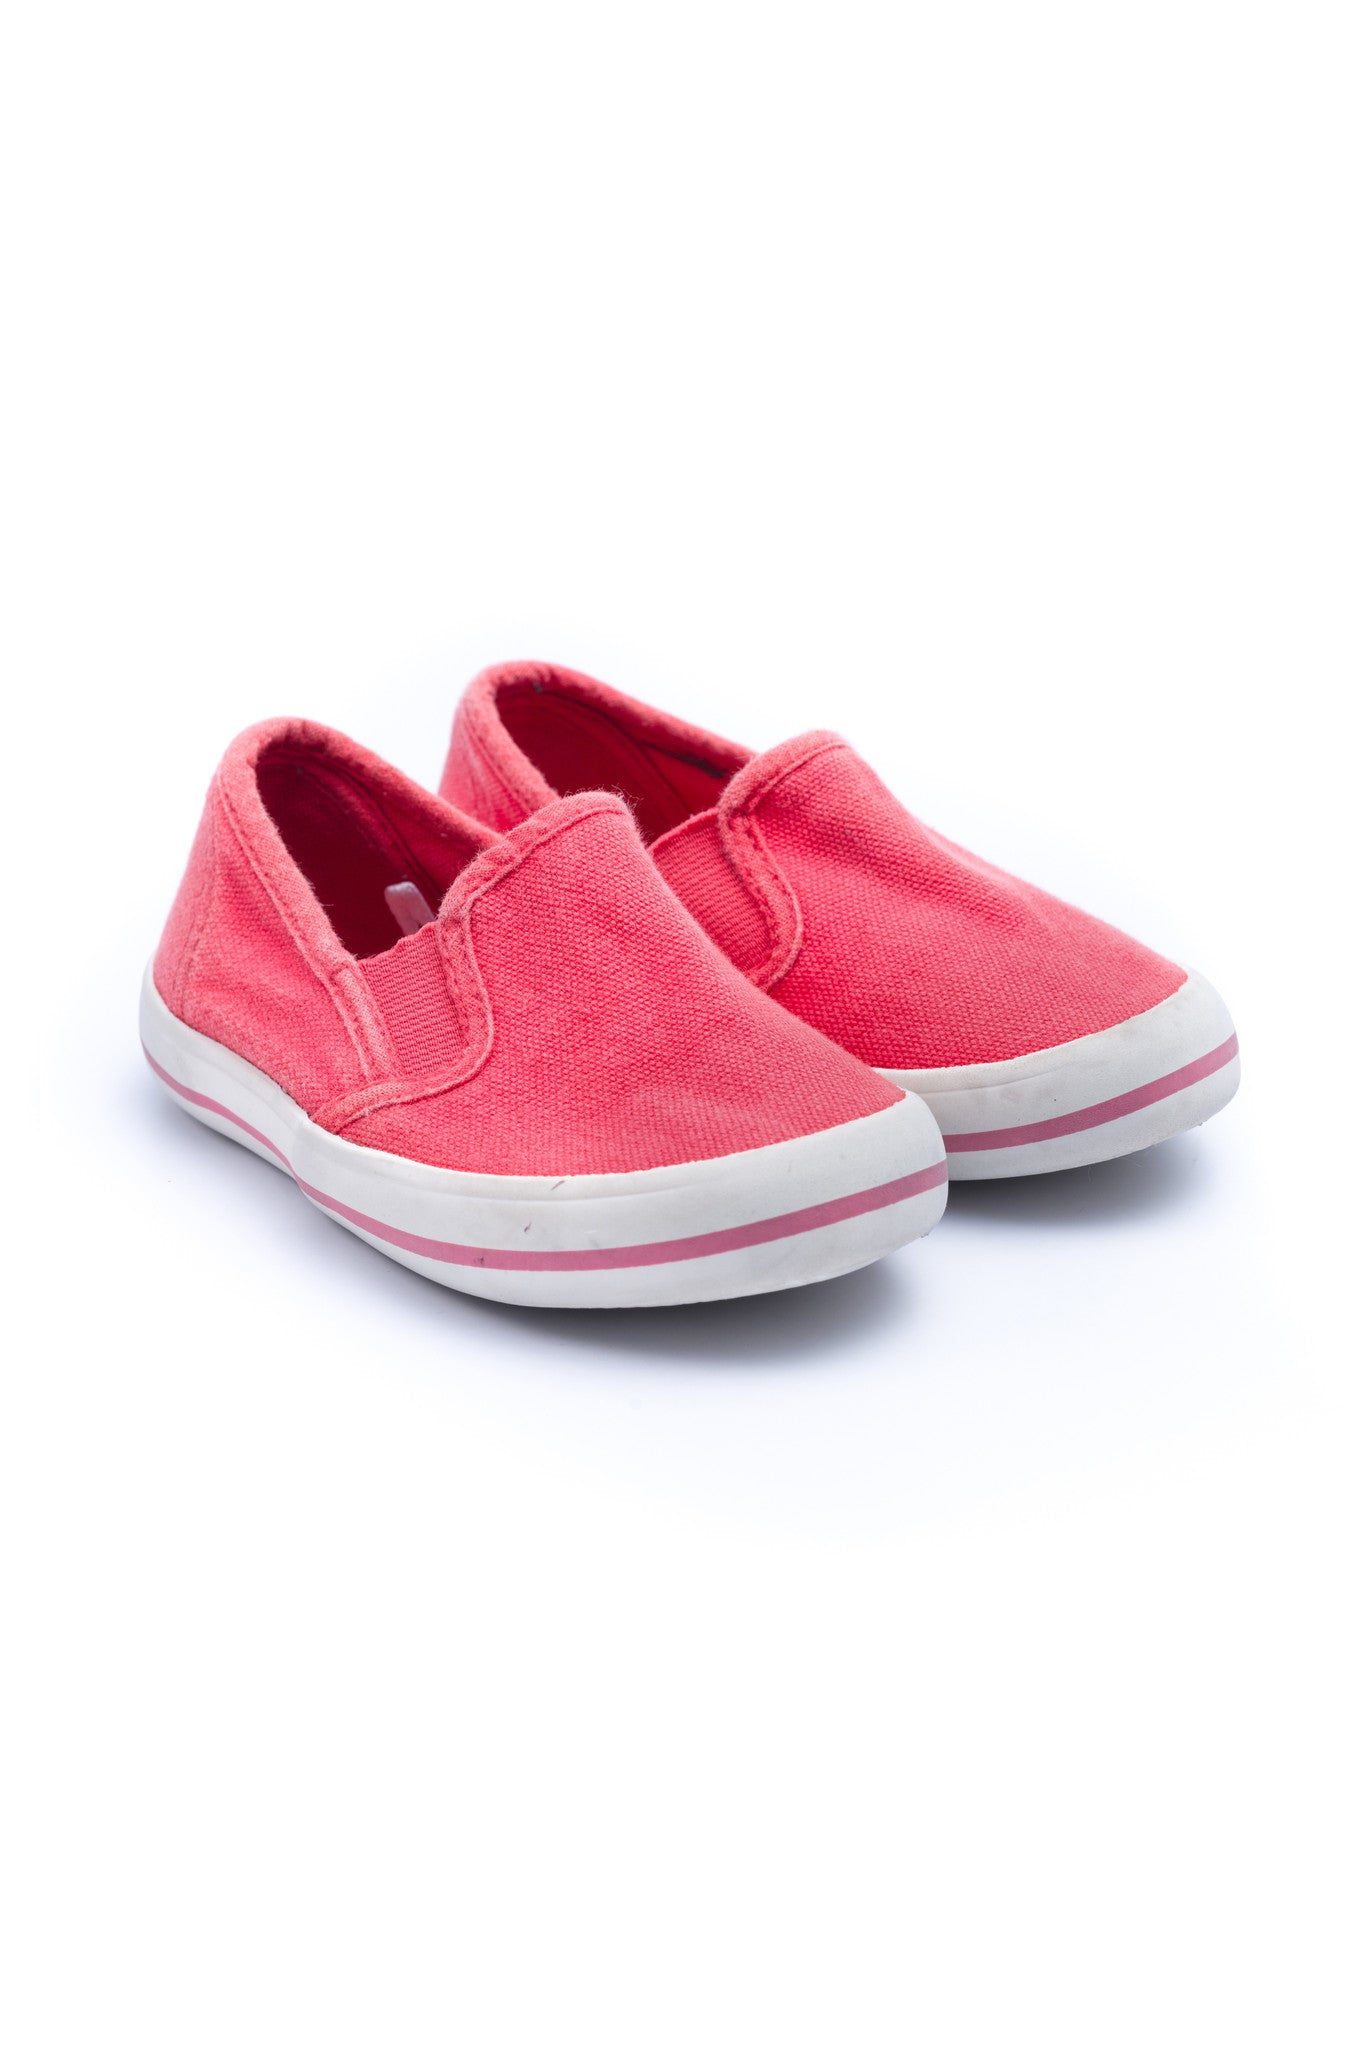 Shoes 18-24M, Seed at Retykle - Online Baby & Kids Clothing Up to 90% Off